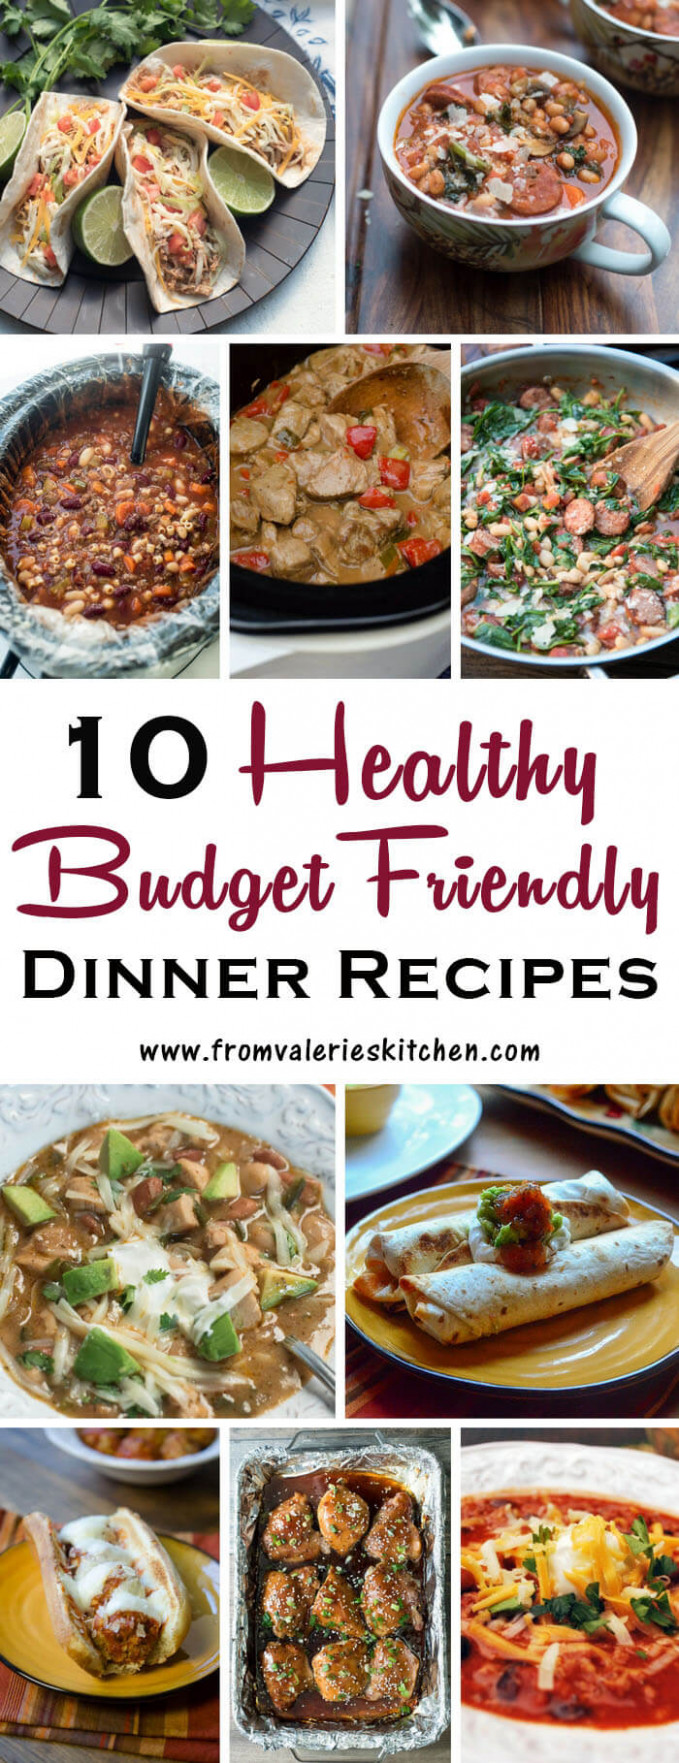 10 Healthy Dinner Recipes on a Budget | Valerie's Kitchen - recipes cheap dinner